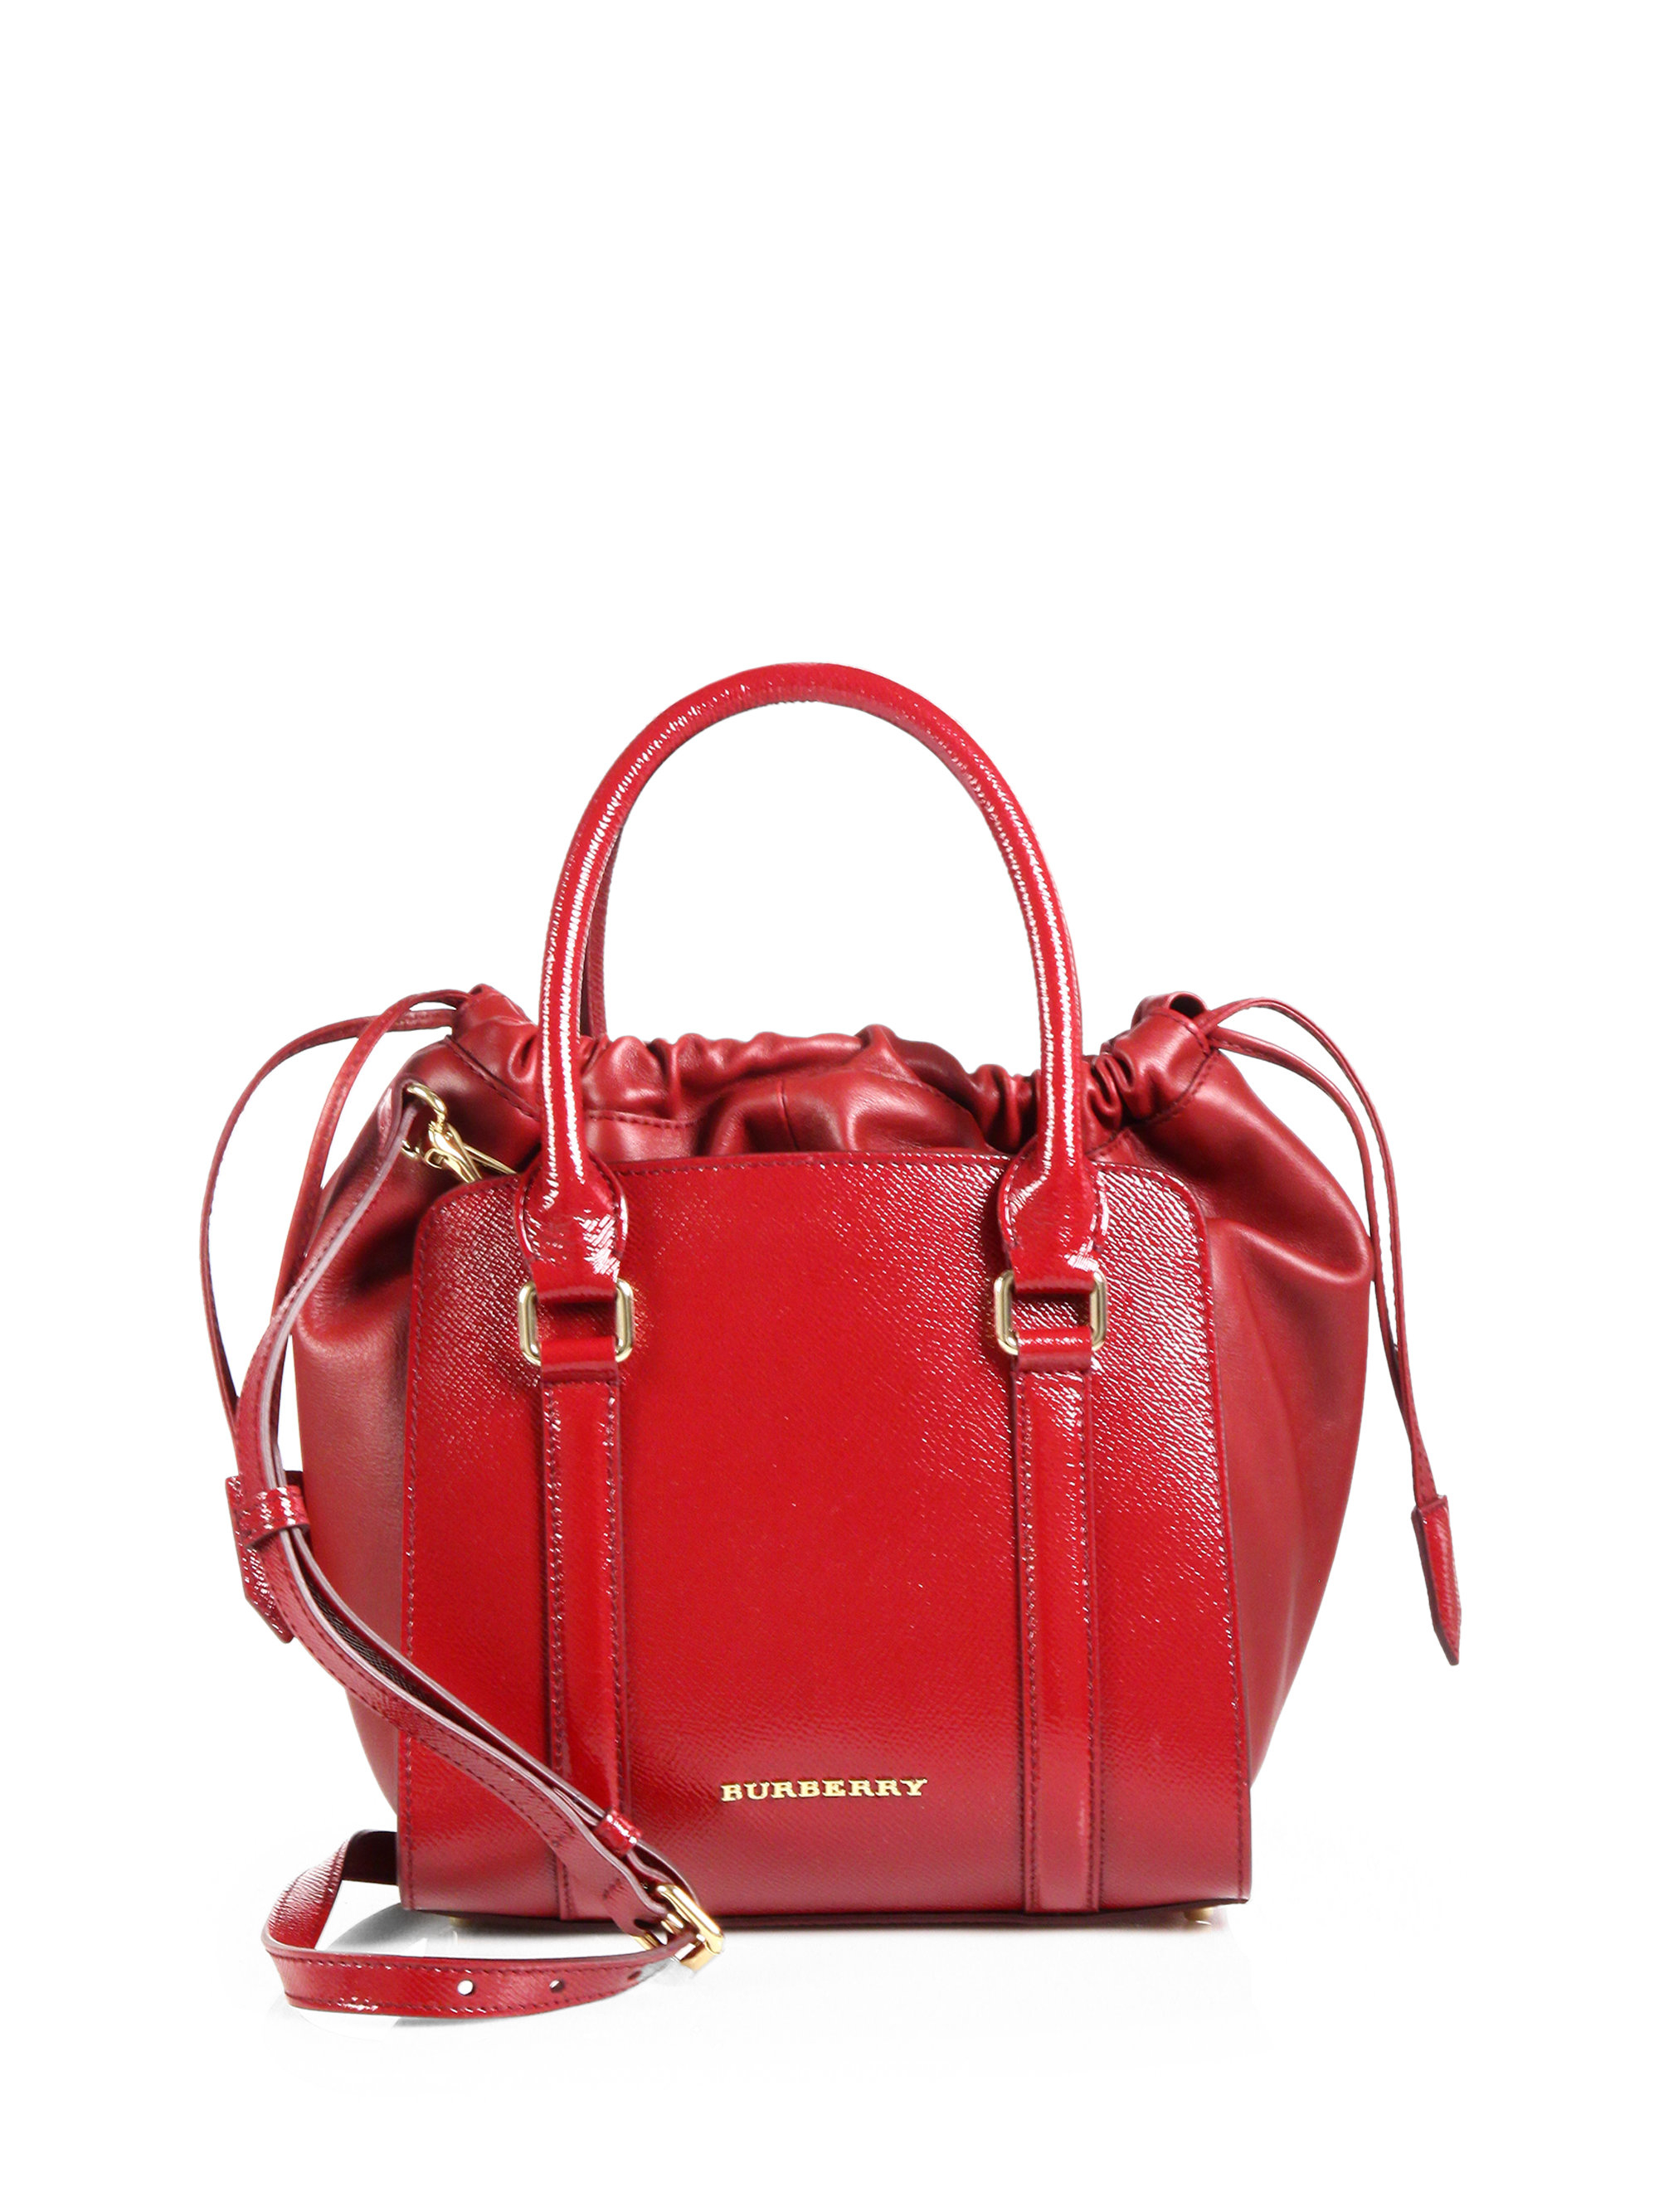 24afb9d1eba4f Lyst - Burberry Dinton Small London Leather Tote in Red